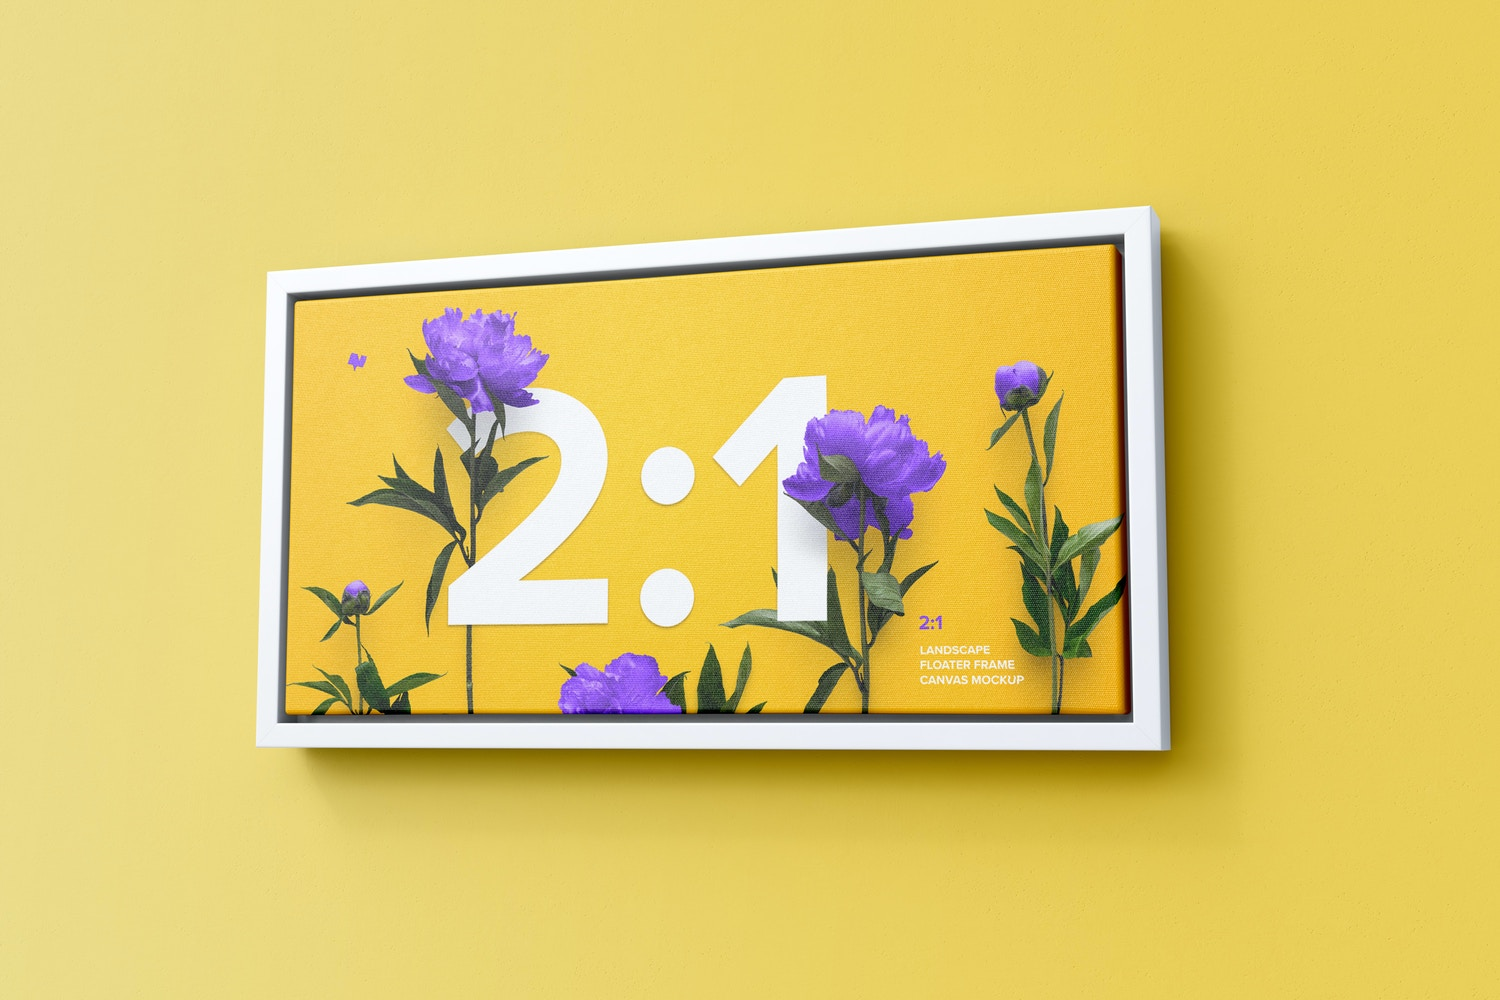 2:1 Landscape Canvas Mockup in Floater Frame, Right View